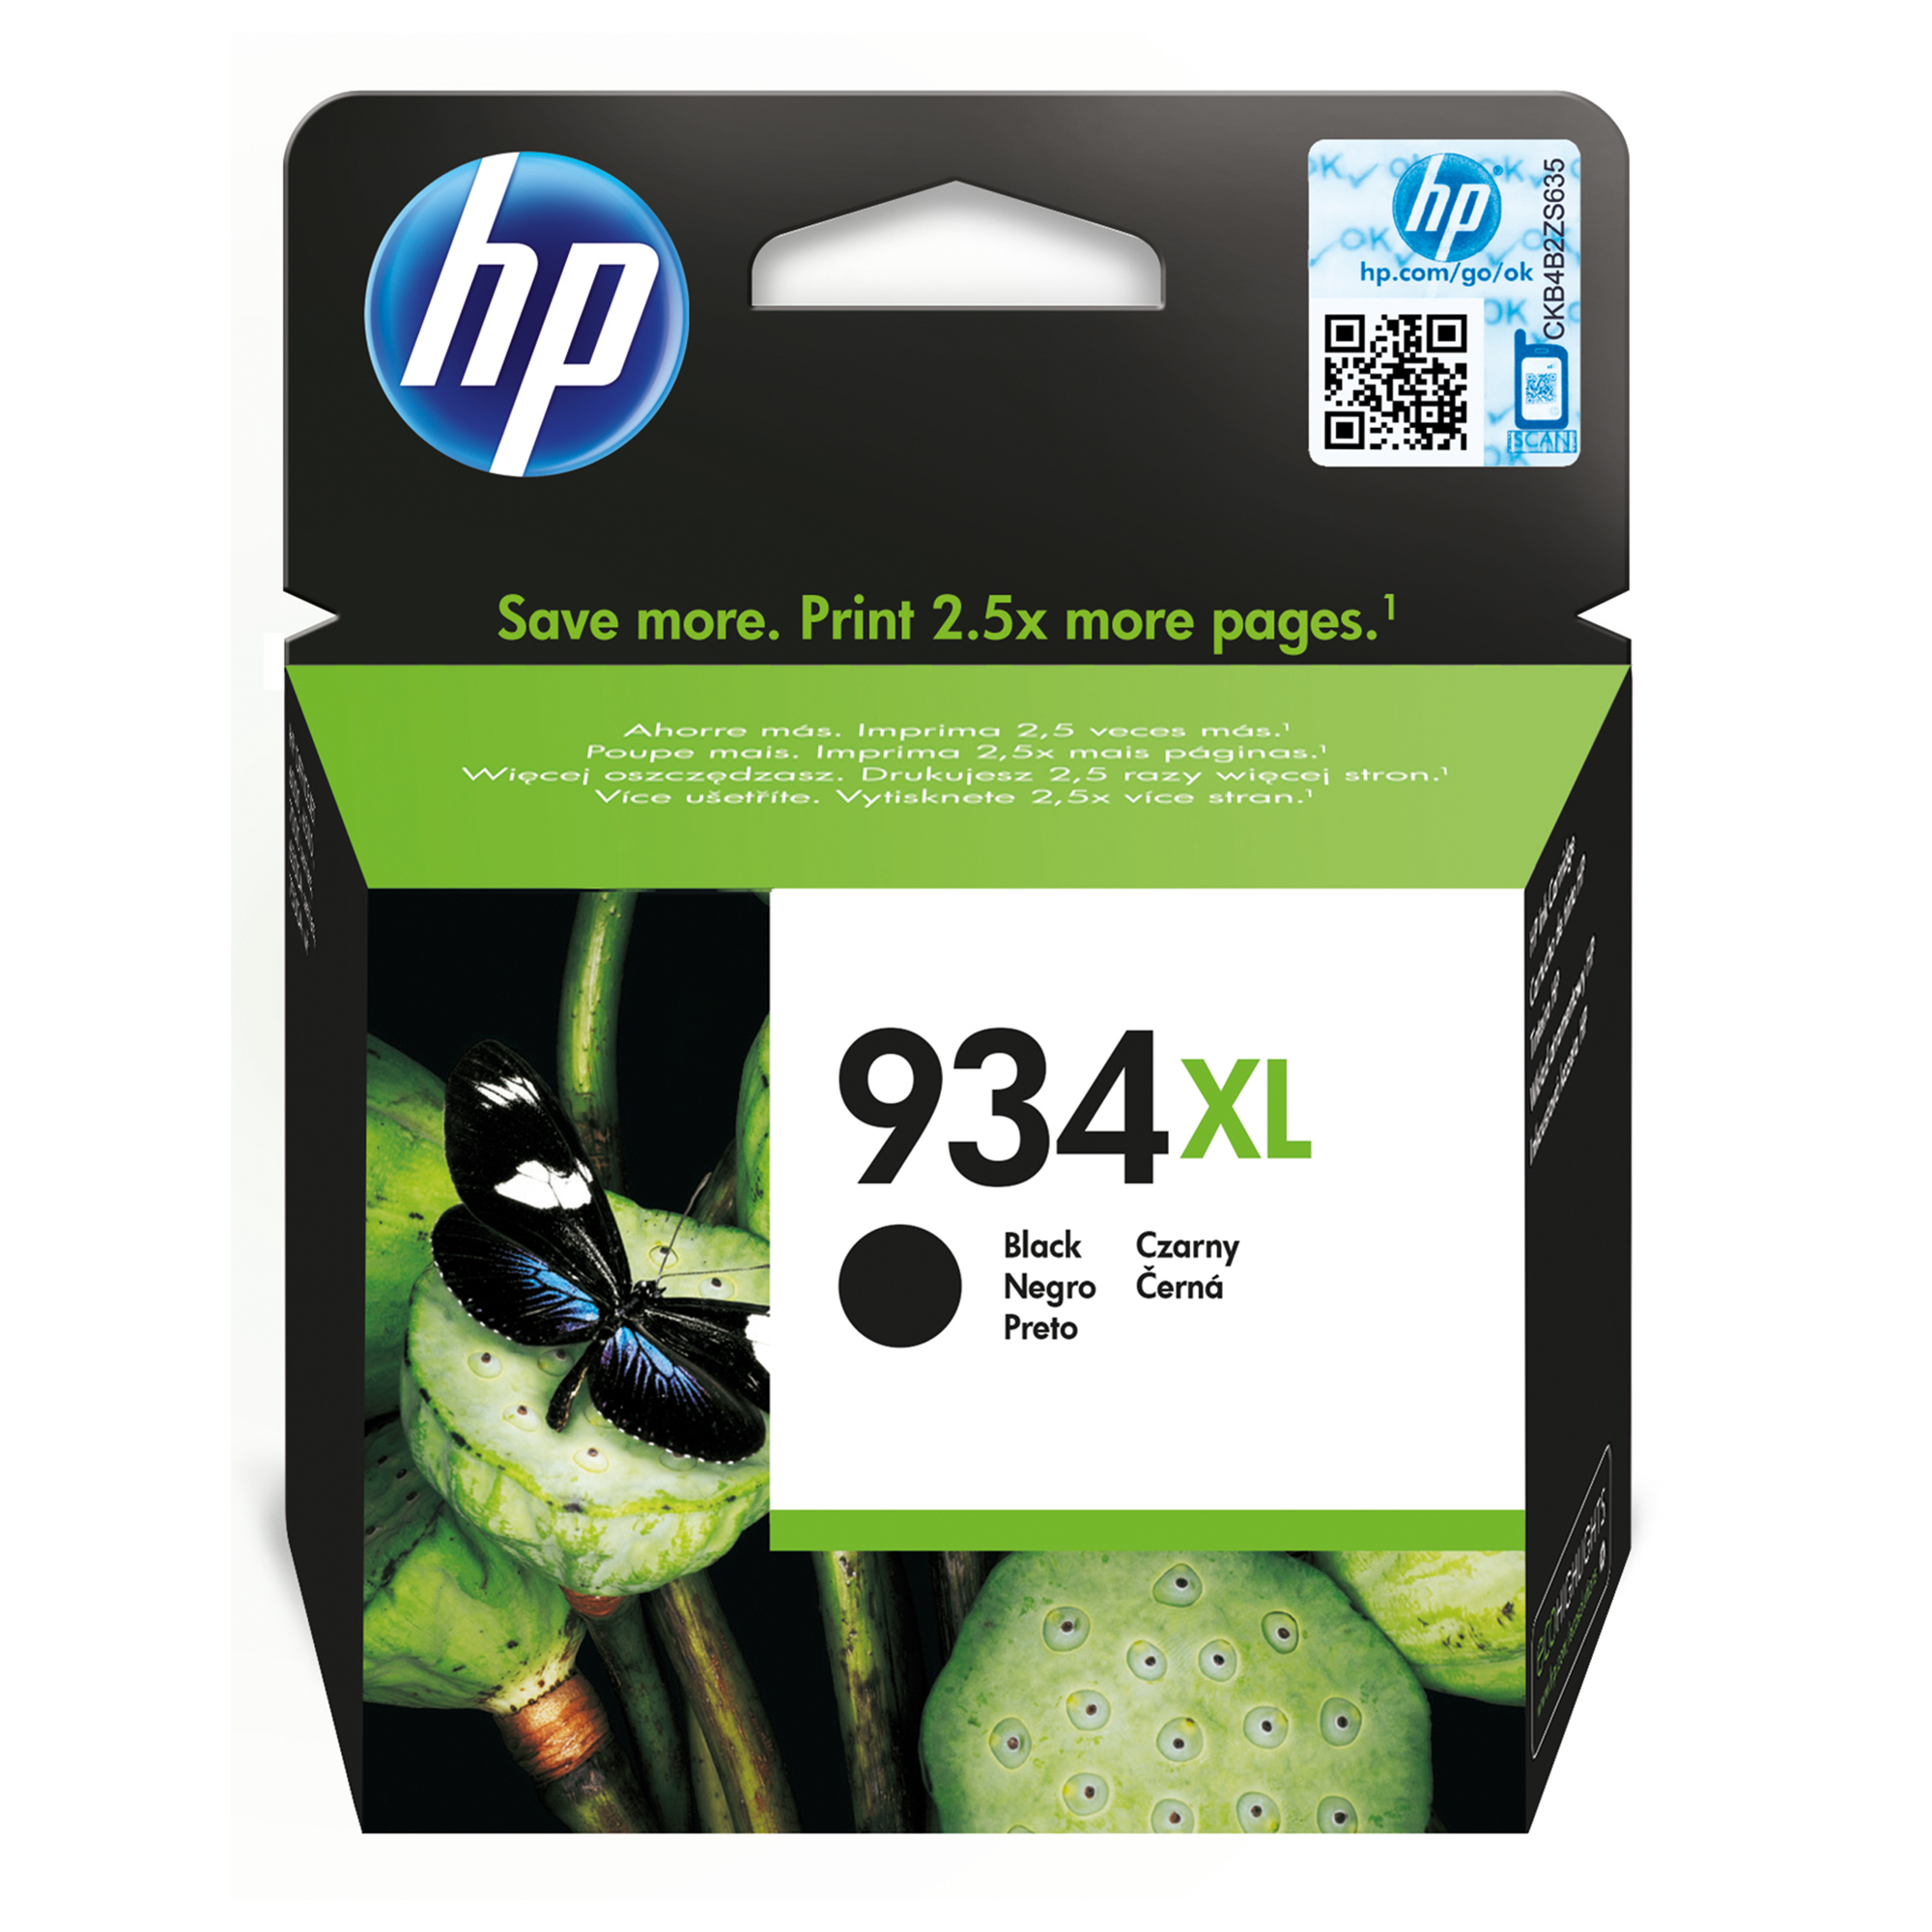 BB Compat HP C2P23AE (934XL) Black Dye Cart C2P23AE - rem01